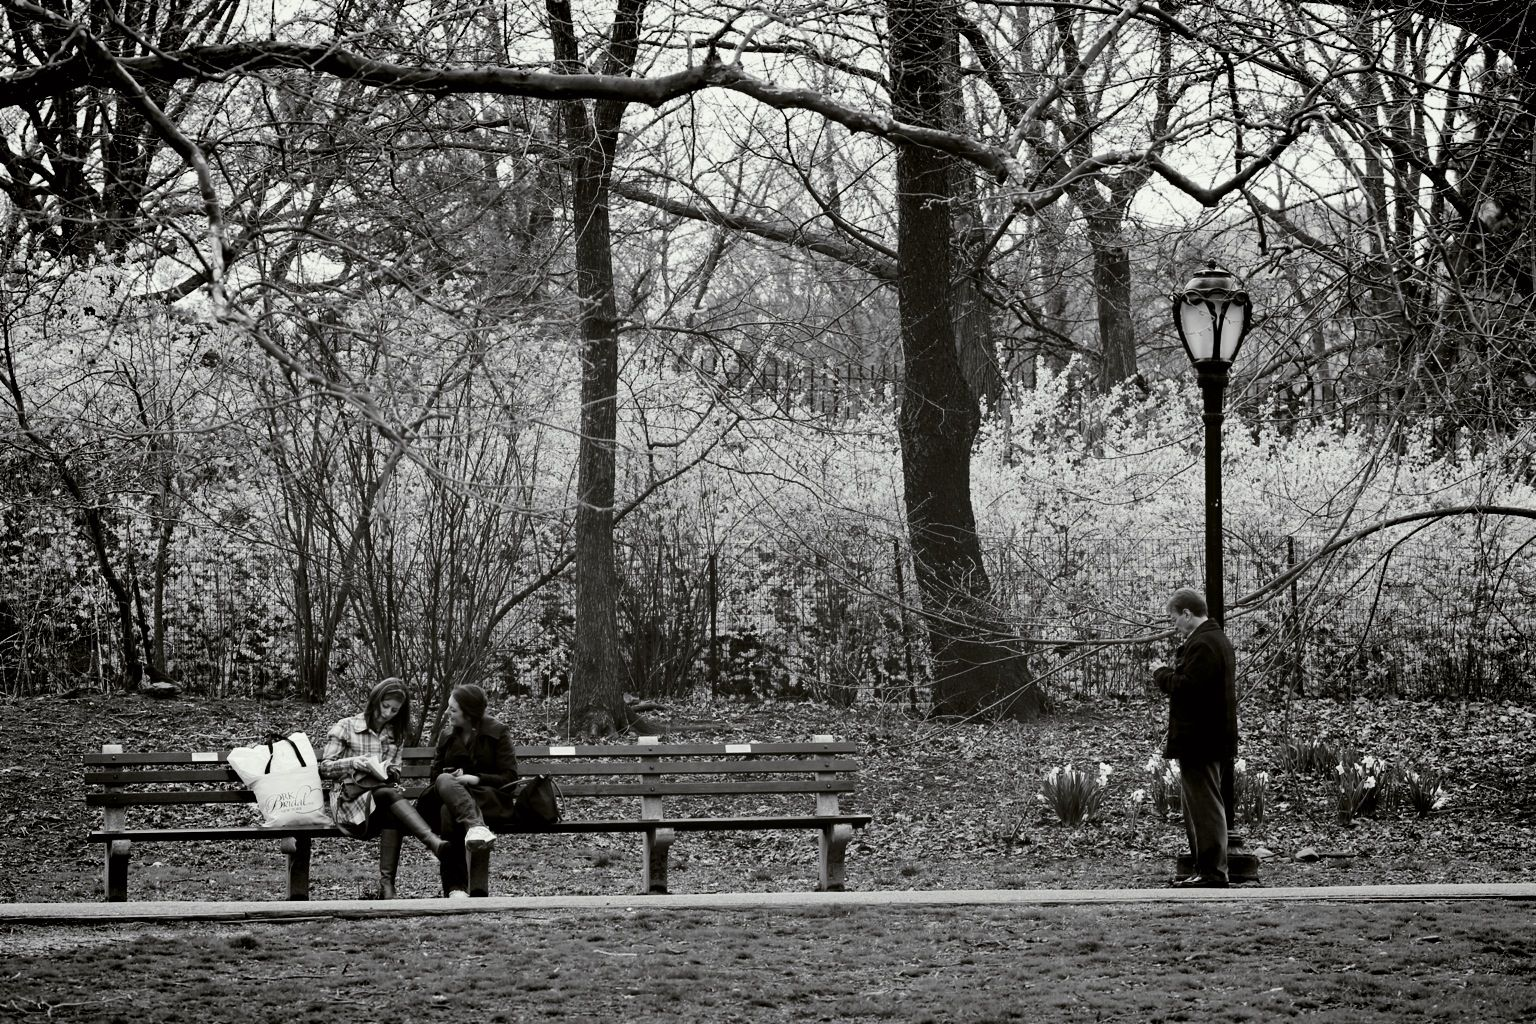 NYC, central park, benches, sitting, lamppost, fall, black and white, © will rodenbough